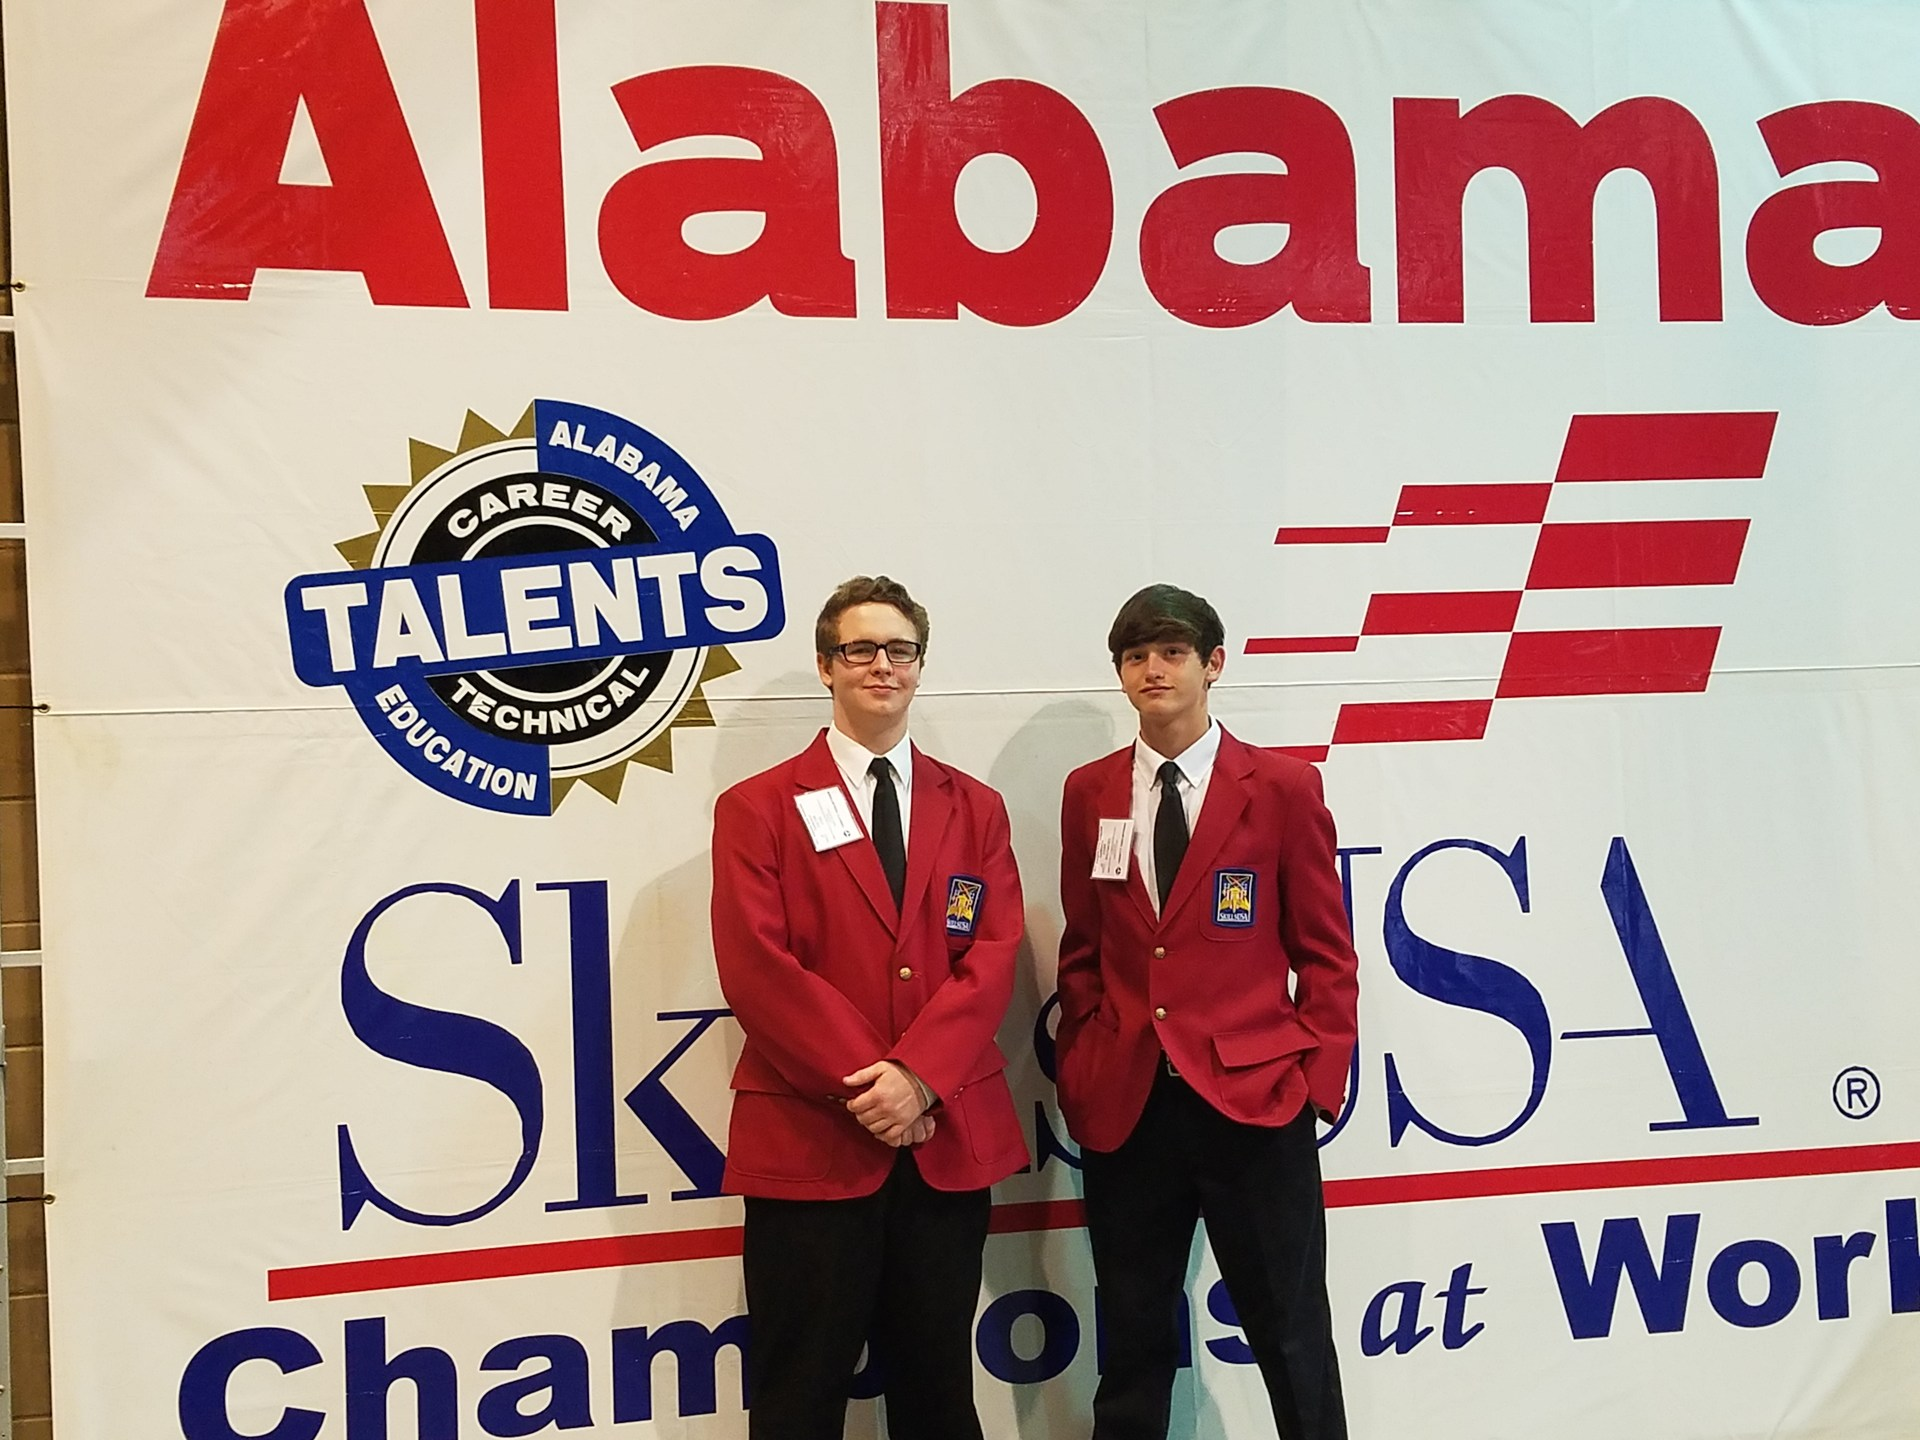 Alabama SkillsUSA state president and his campaign manager